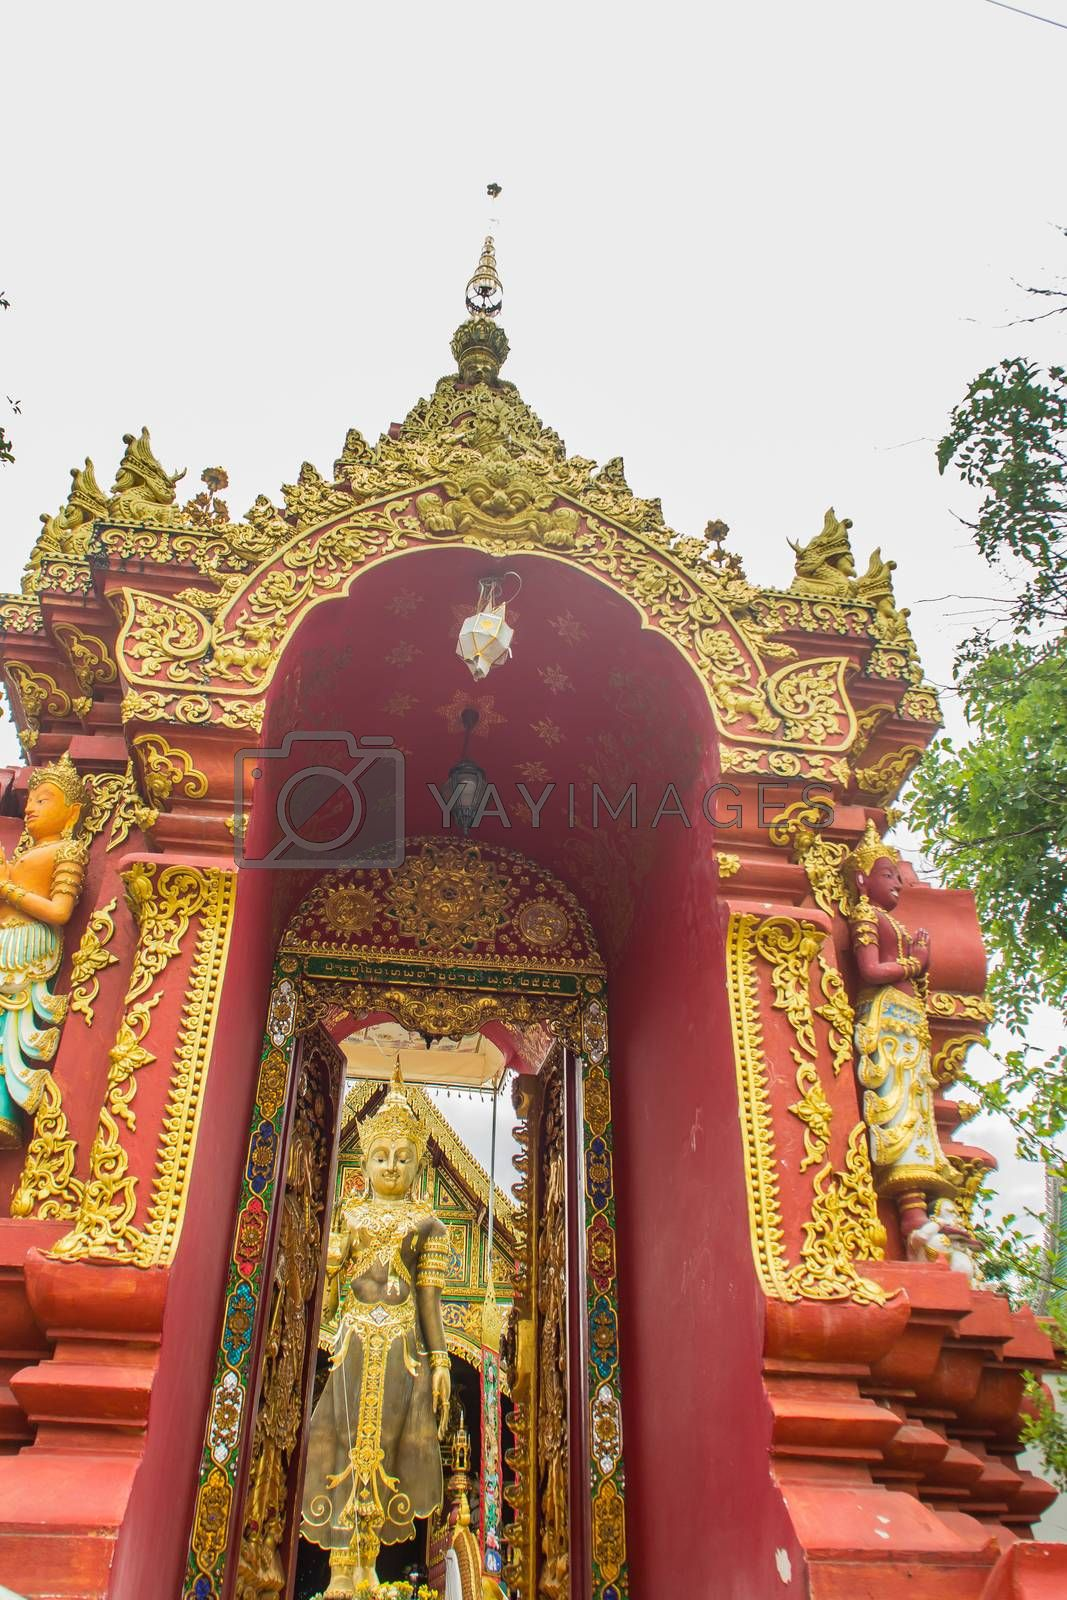 Beautiful art of Buddha image, religious places and religious objects in Myanmar mixed with Lanna style at Wat Ming Muang Buddhist temple, Chiang Rai, Thailand. Mixed Lanna and Burmese arts.